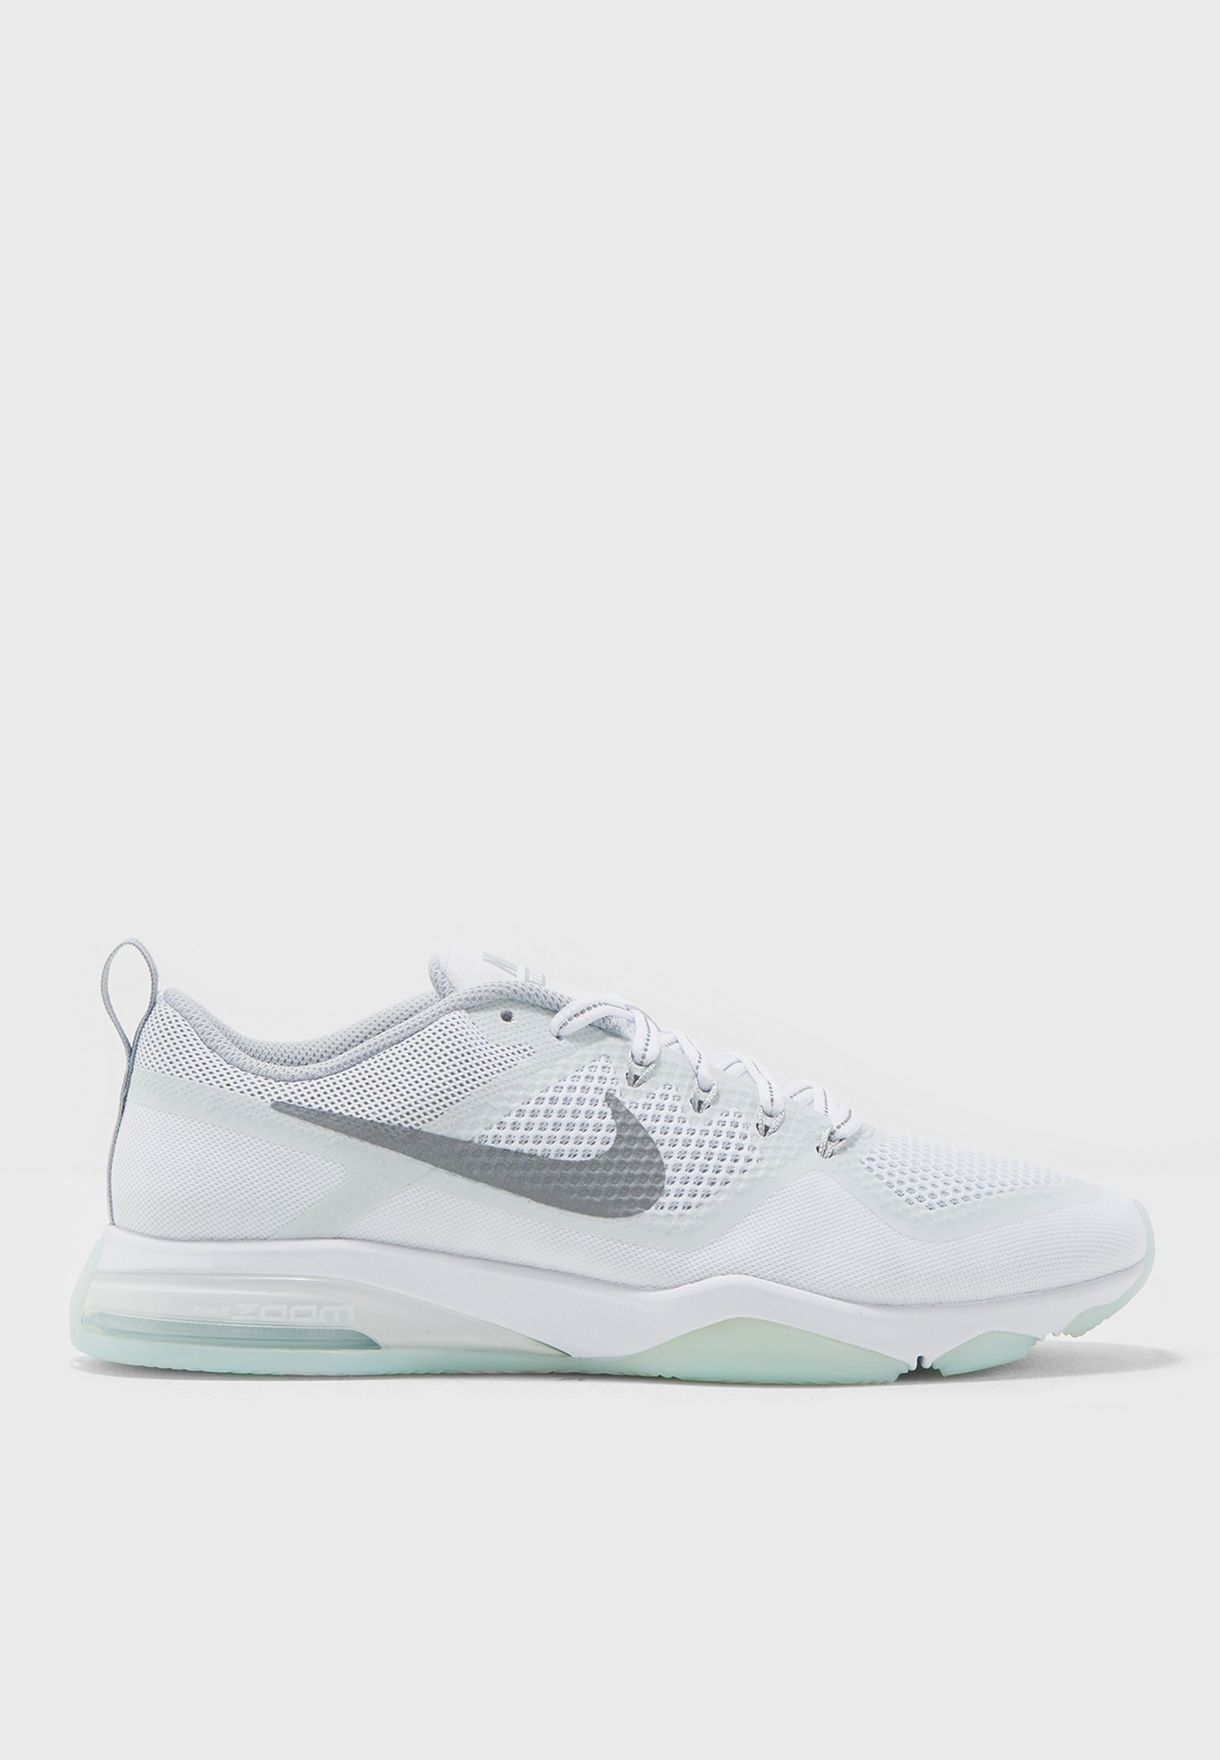 9575e0398808b Shop Nike multicolor Air Zoom Fitness Reflect 922878-100 for Women ...